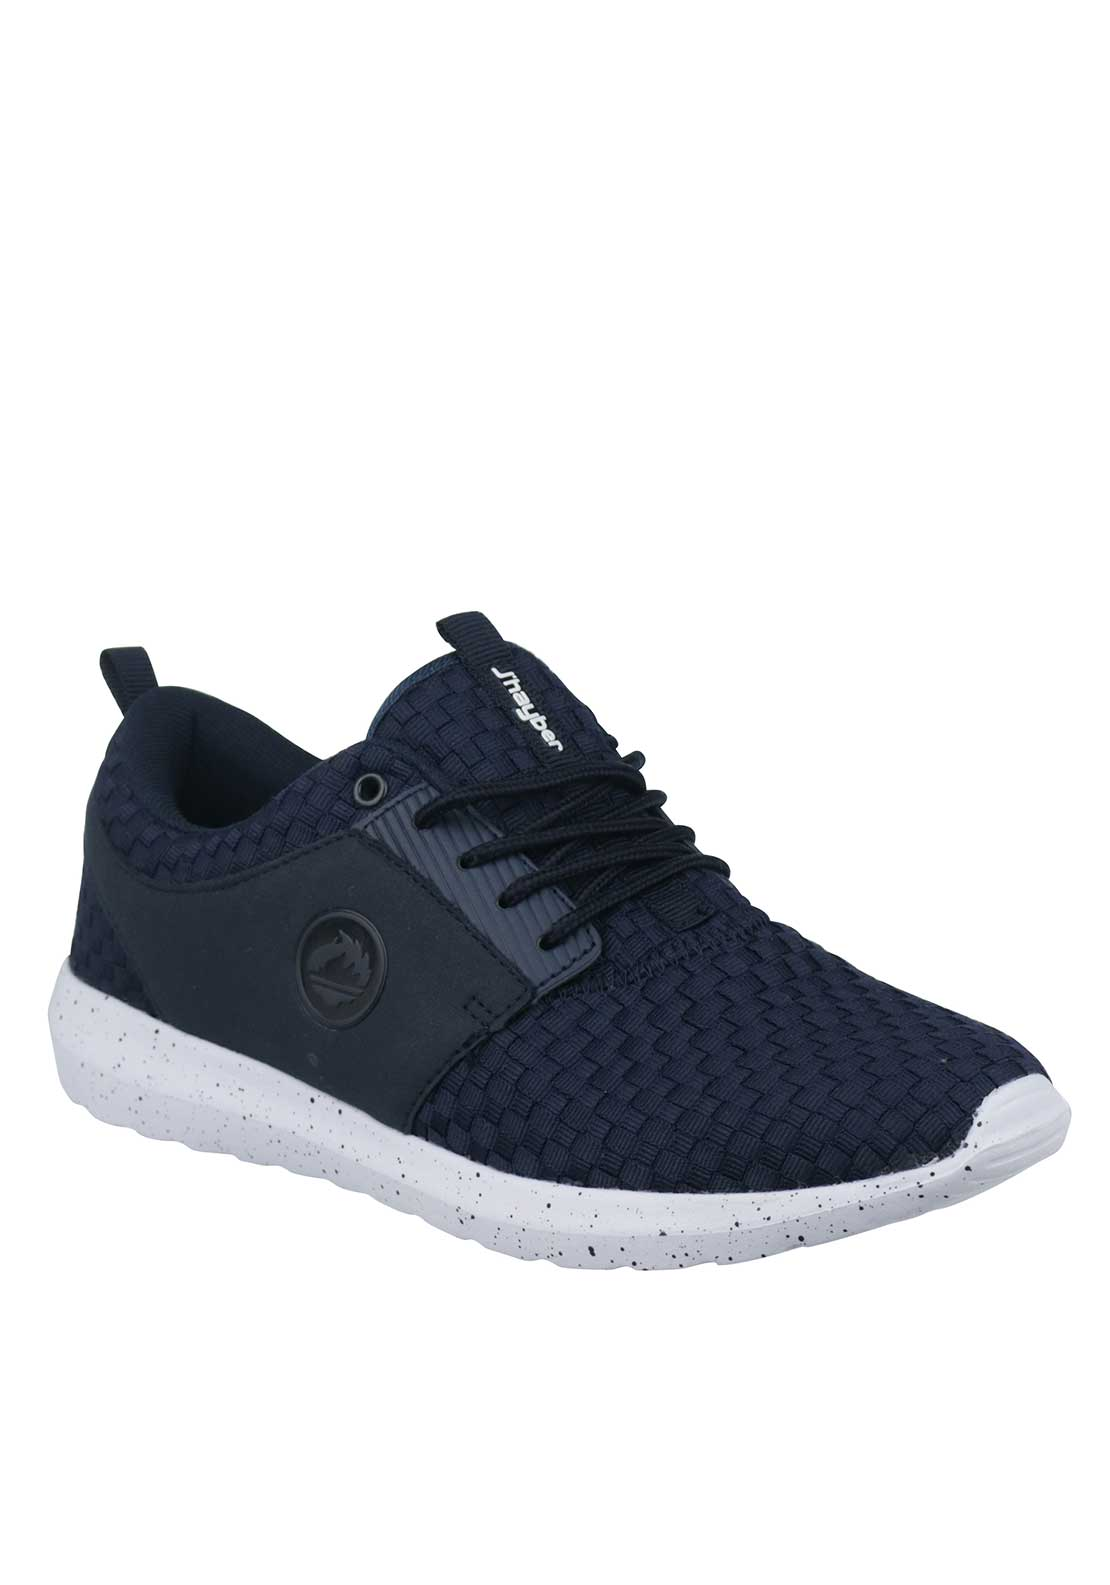 J'hayber Mens Chaforo Woven Trainers, Navy